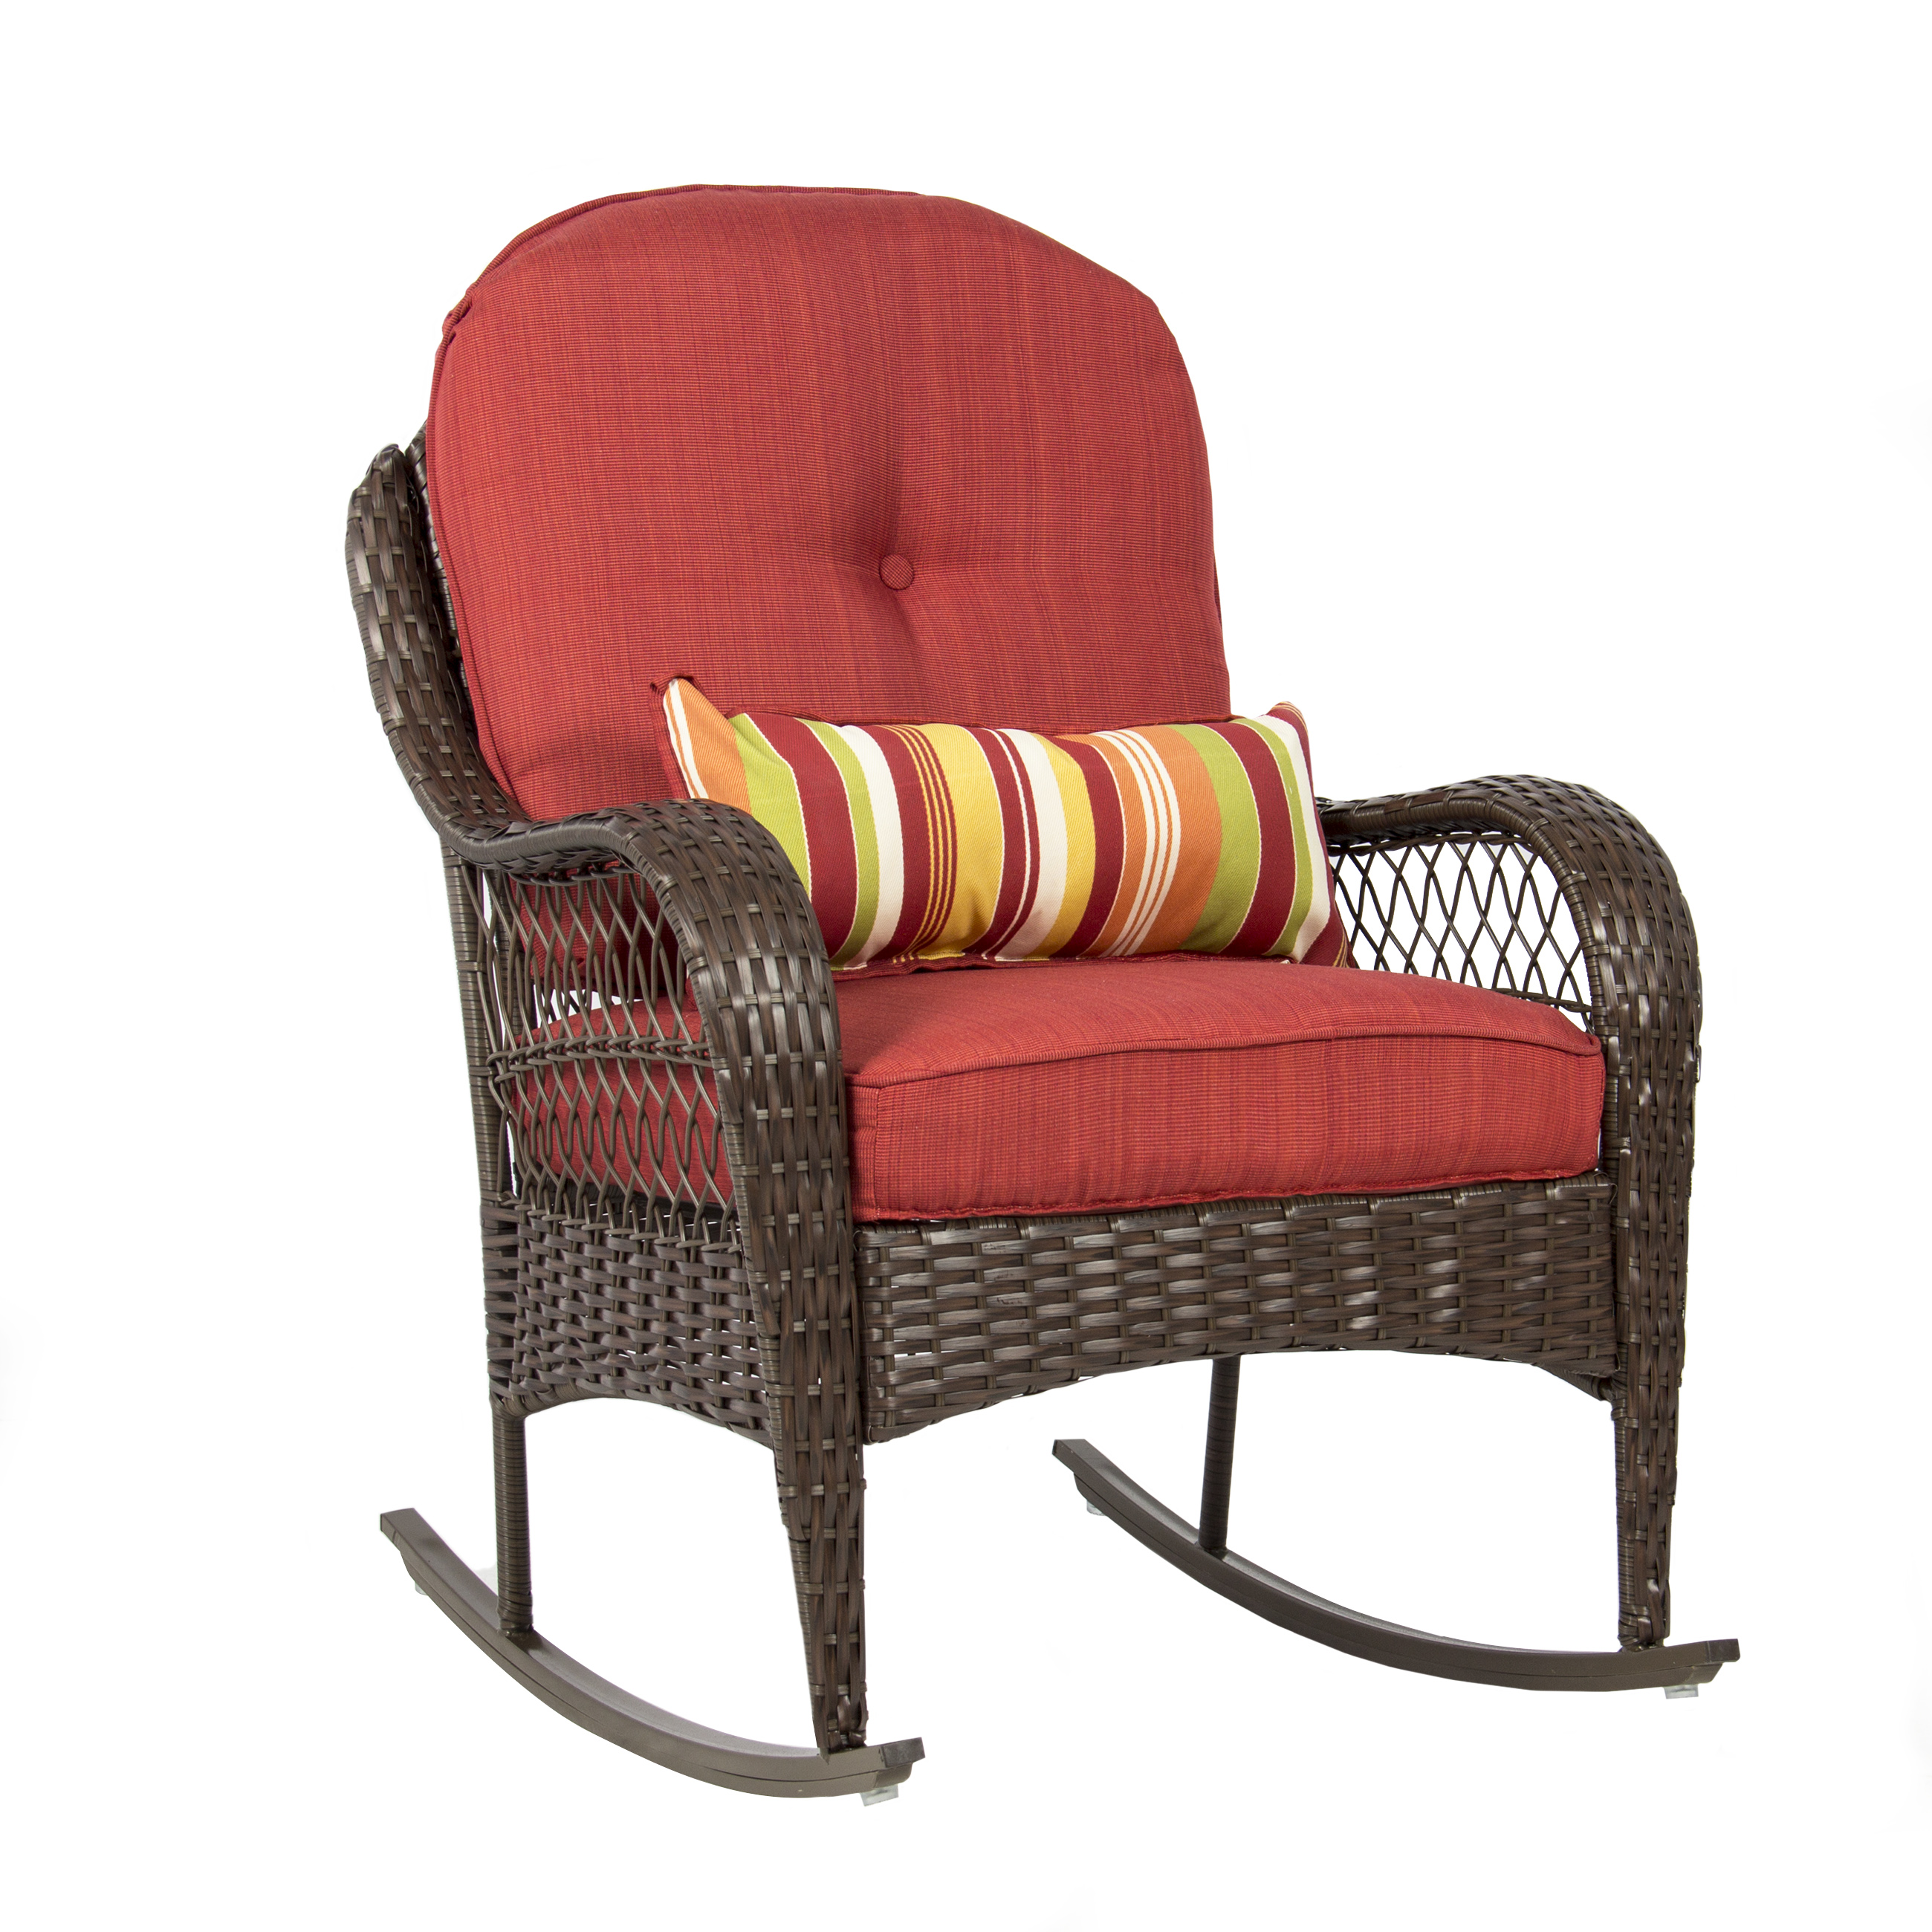 Best Choice Products Wicker Rocking Chair Patio Porch Deck Furniture All  Weather Proof W/ Cushions - Traveller Location